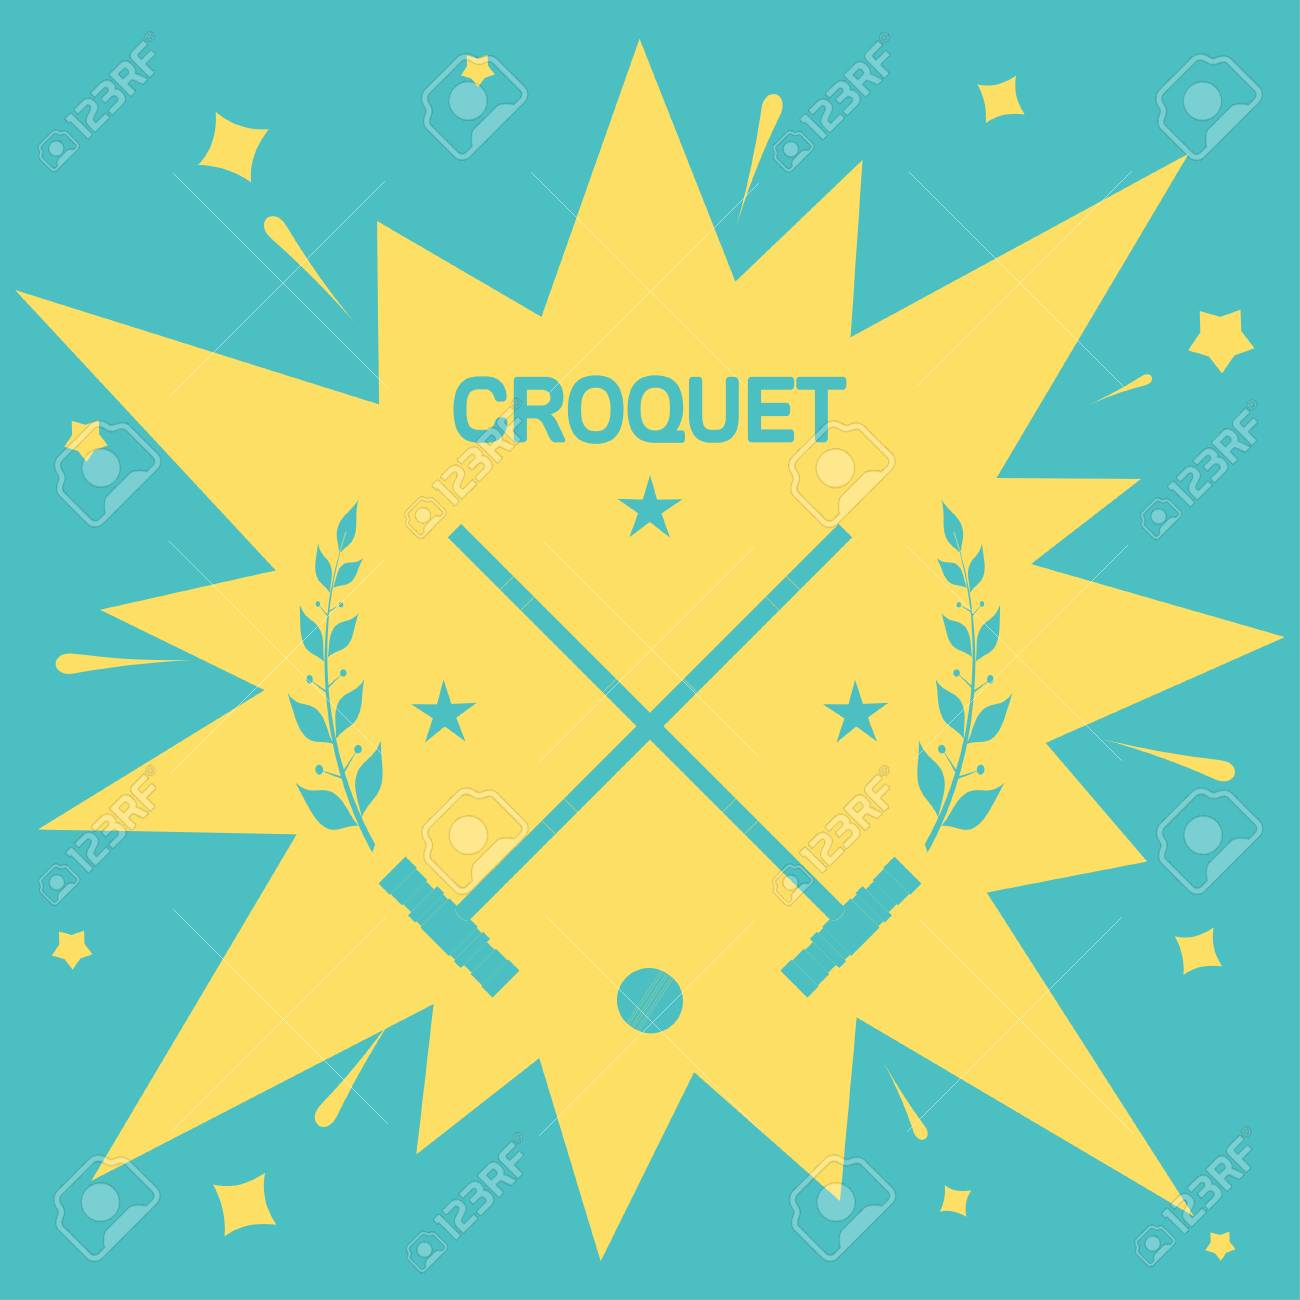 Croquet Vintage Background With Clubs And Ball For Croquet 1300x1300